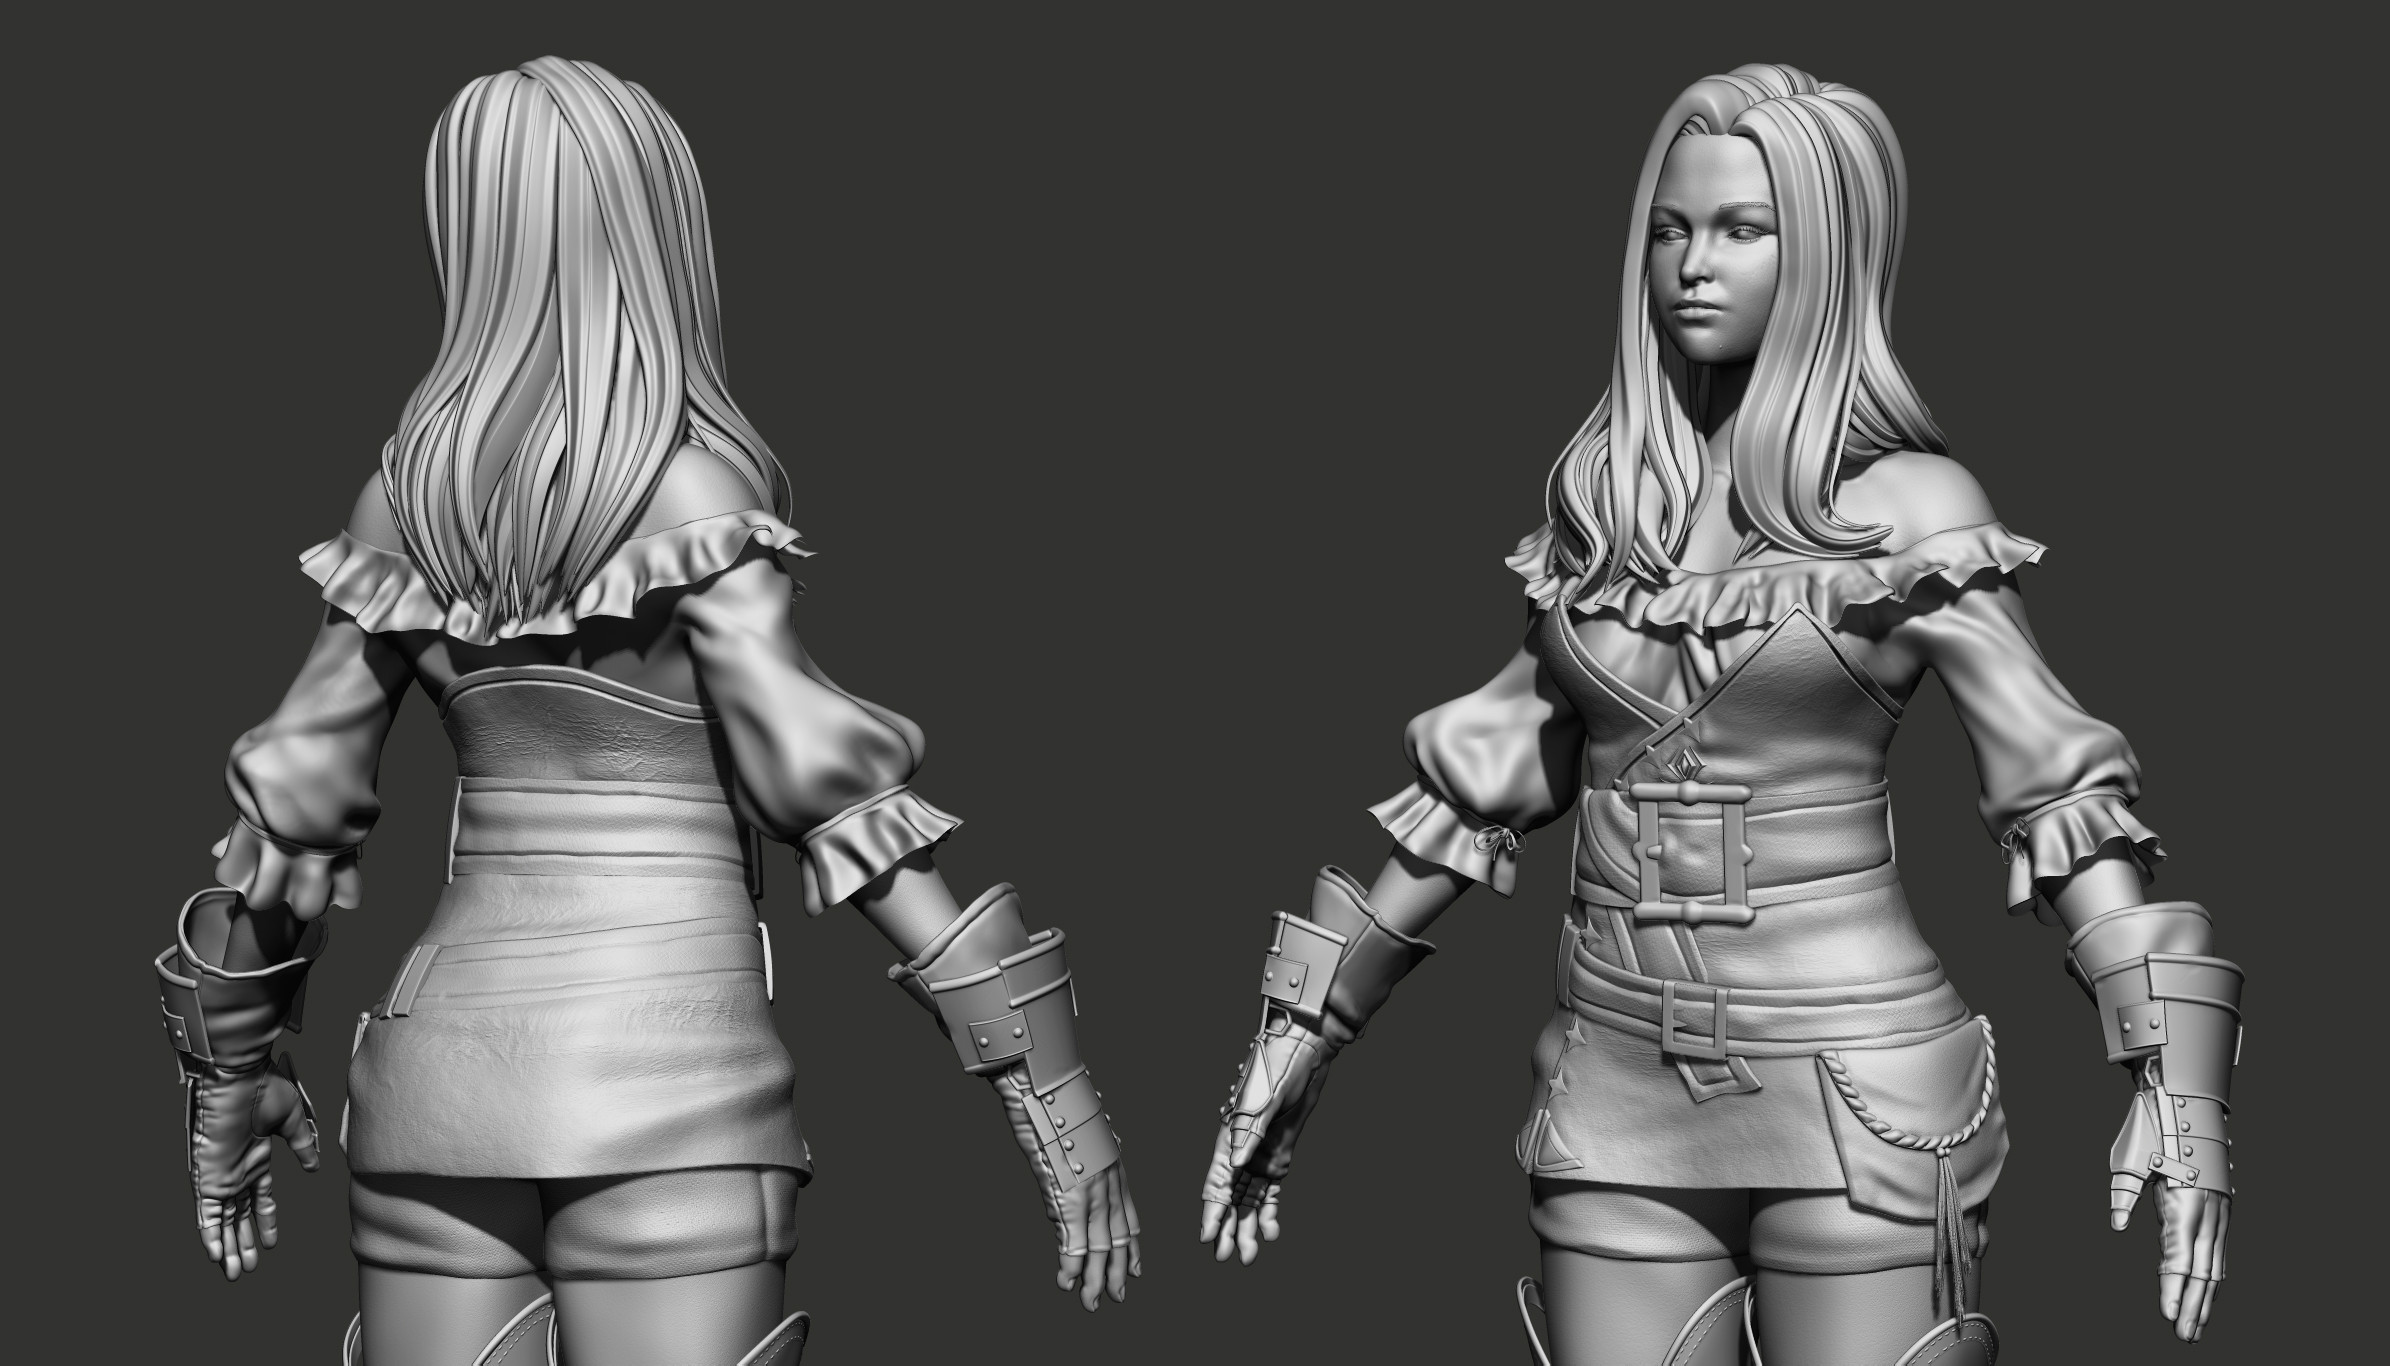 High-poly sculpt in Zbrush